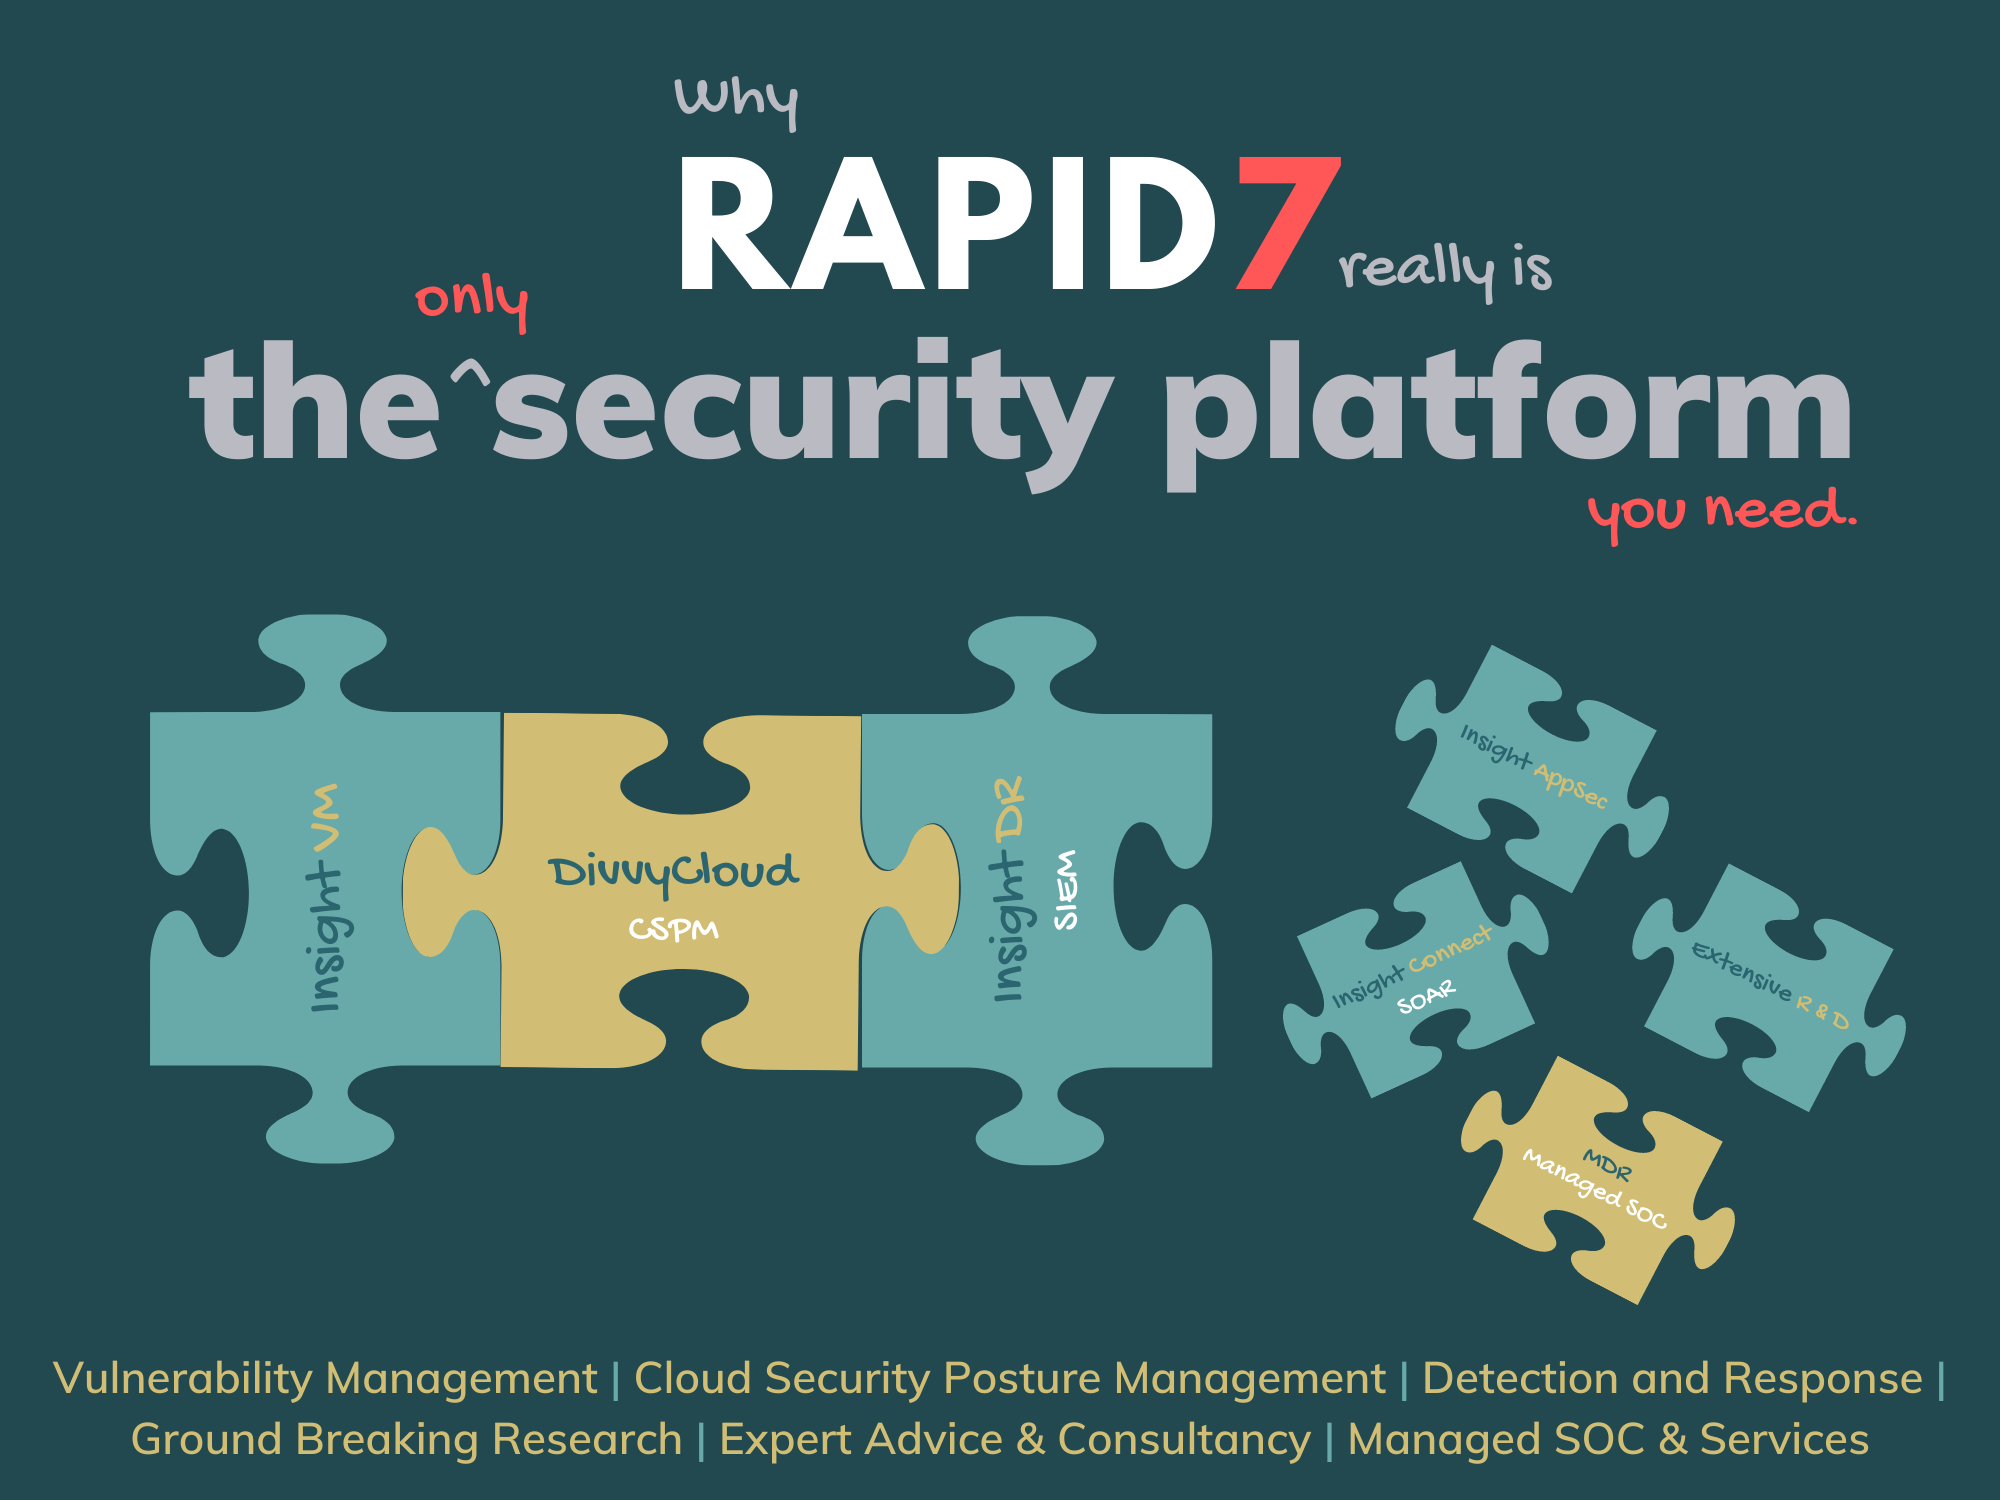 Why Rapid7 is the only security platform you need